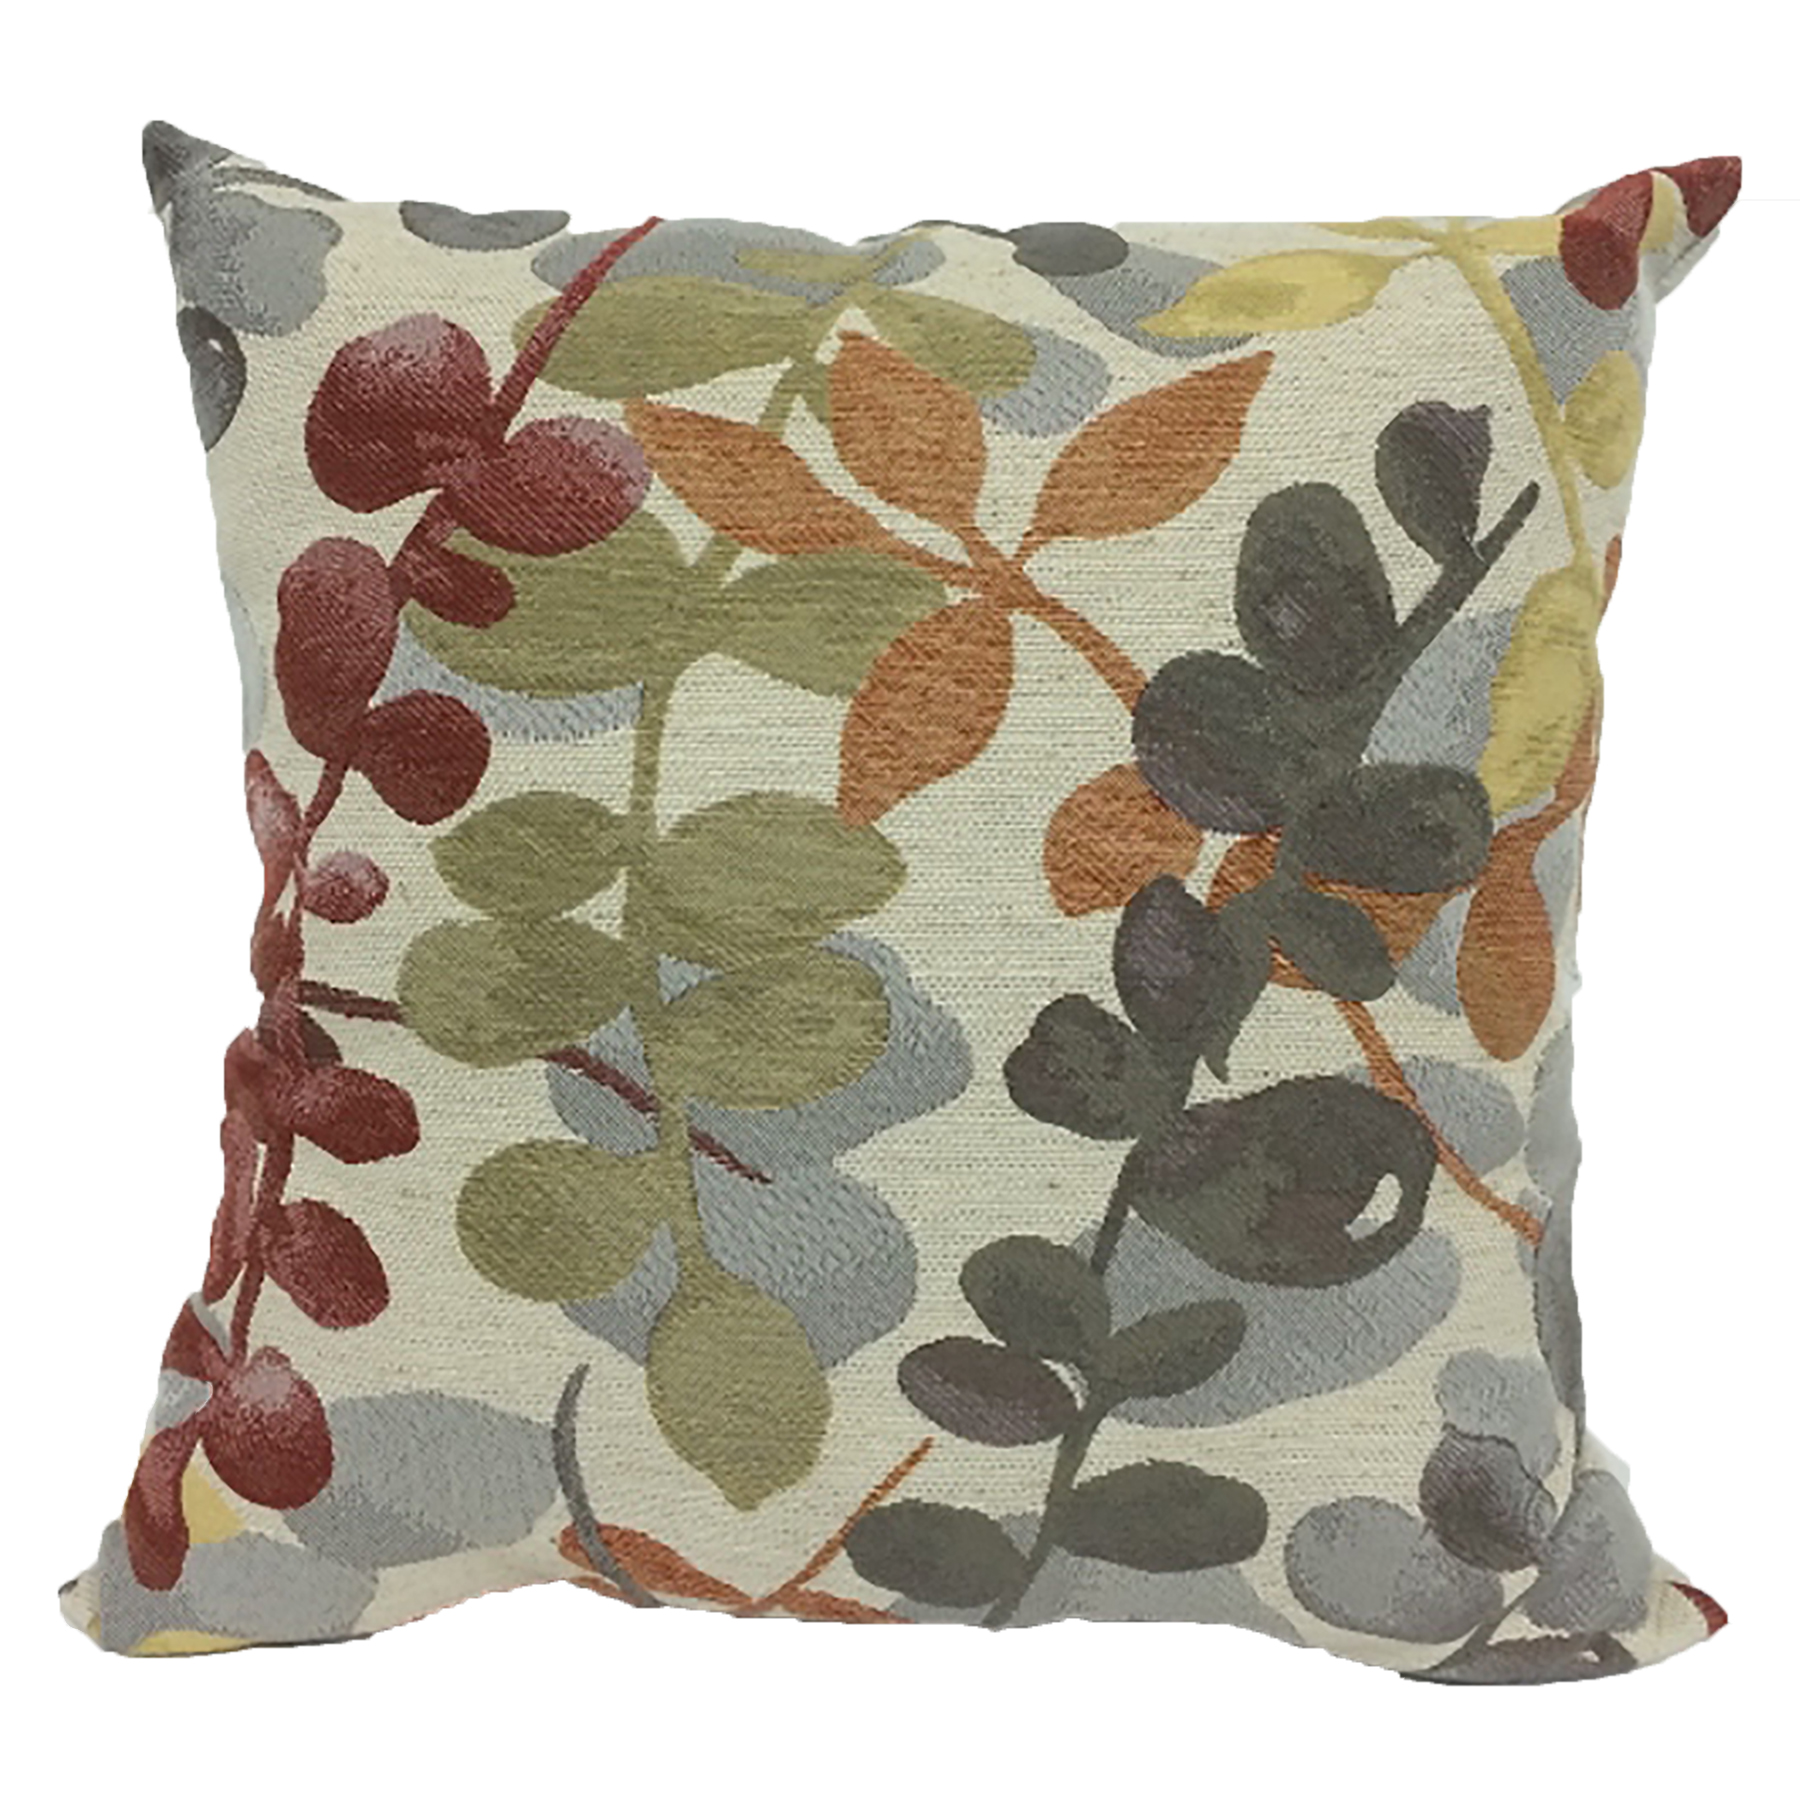 Decorative Pillows Kmart : 16 x 16